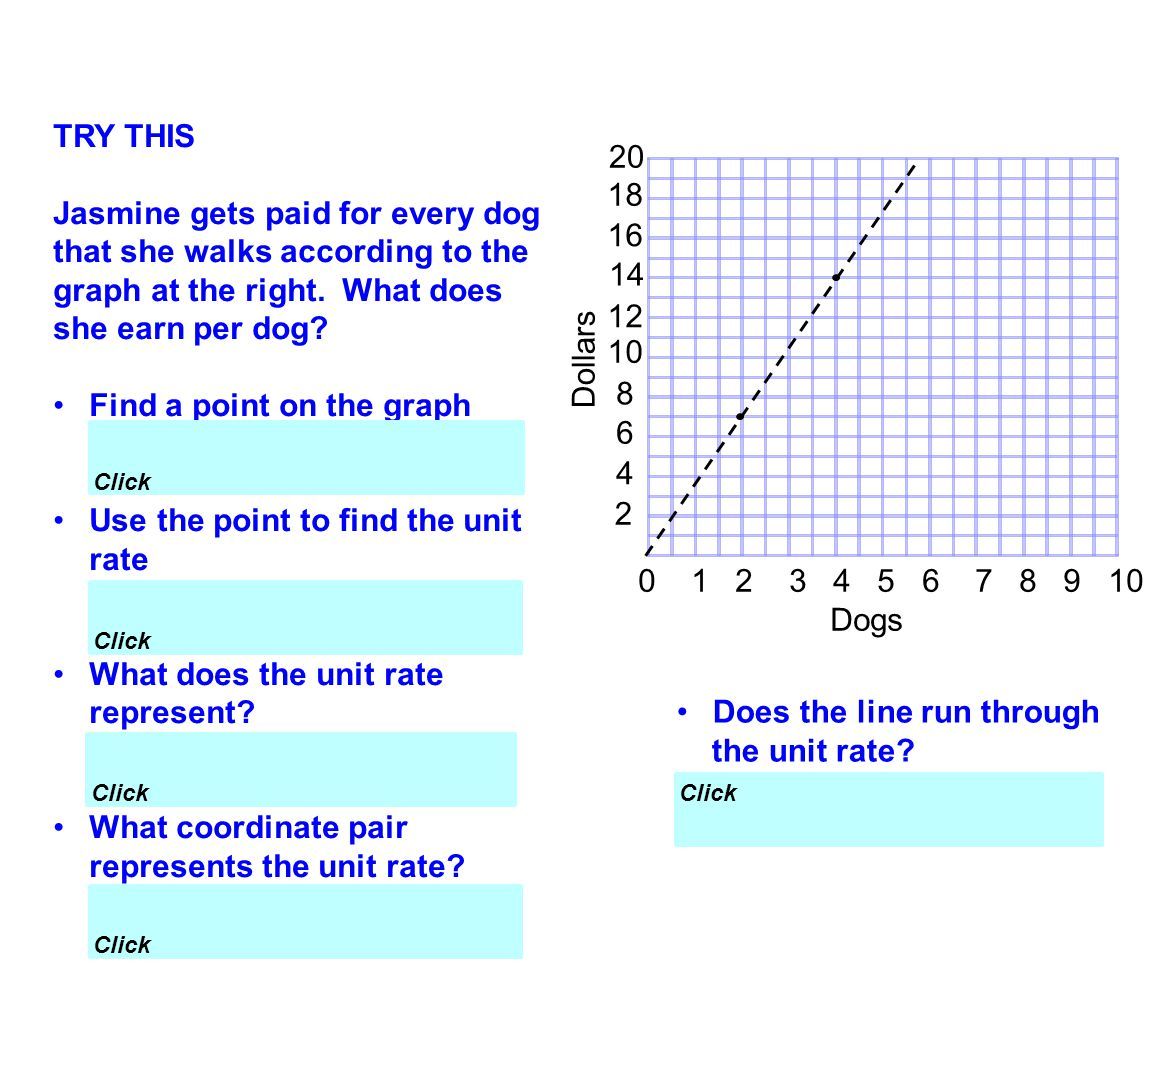 TRY THIS Jasmine gets paid for every dog that she walks according to the graph at the right. What does she earn per dog? Find a point on the graph (2,